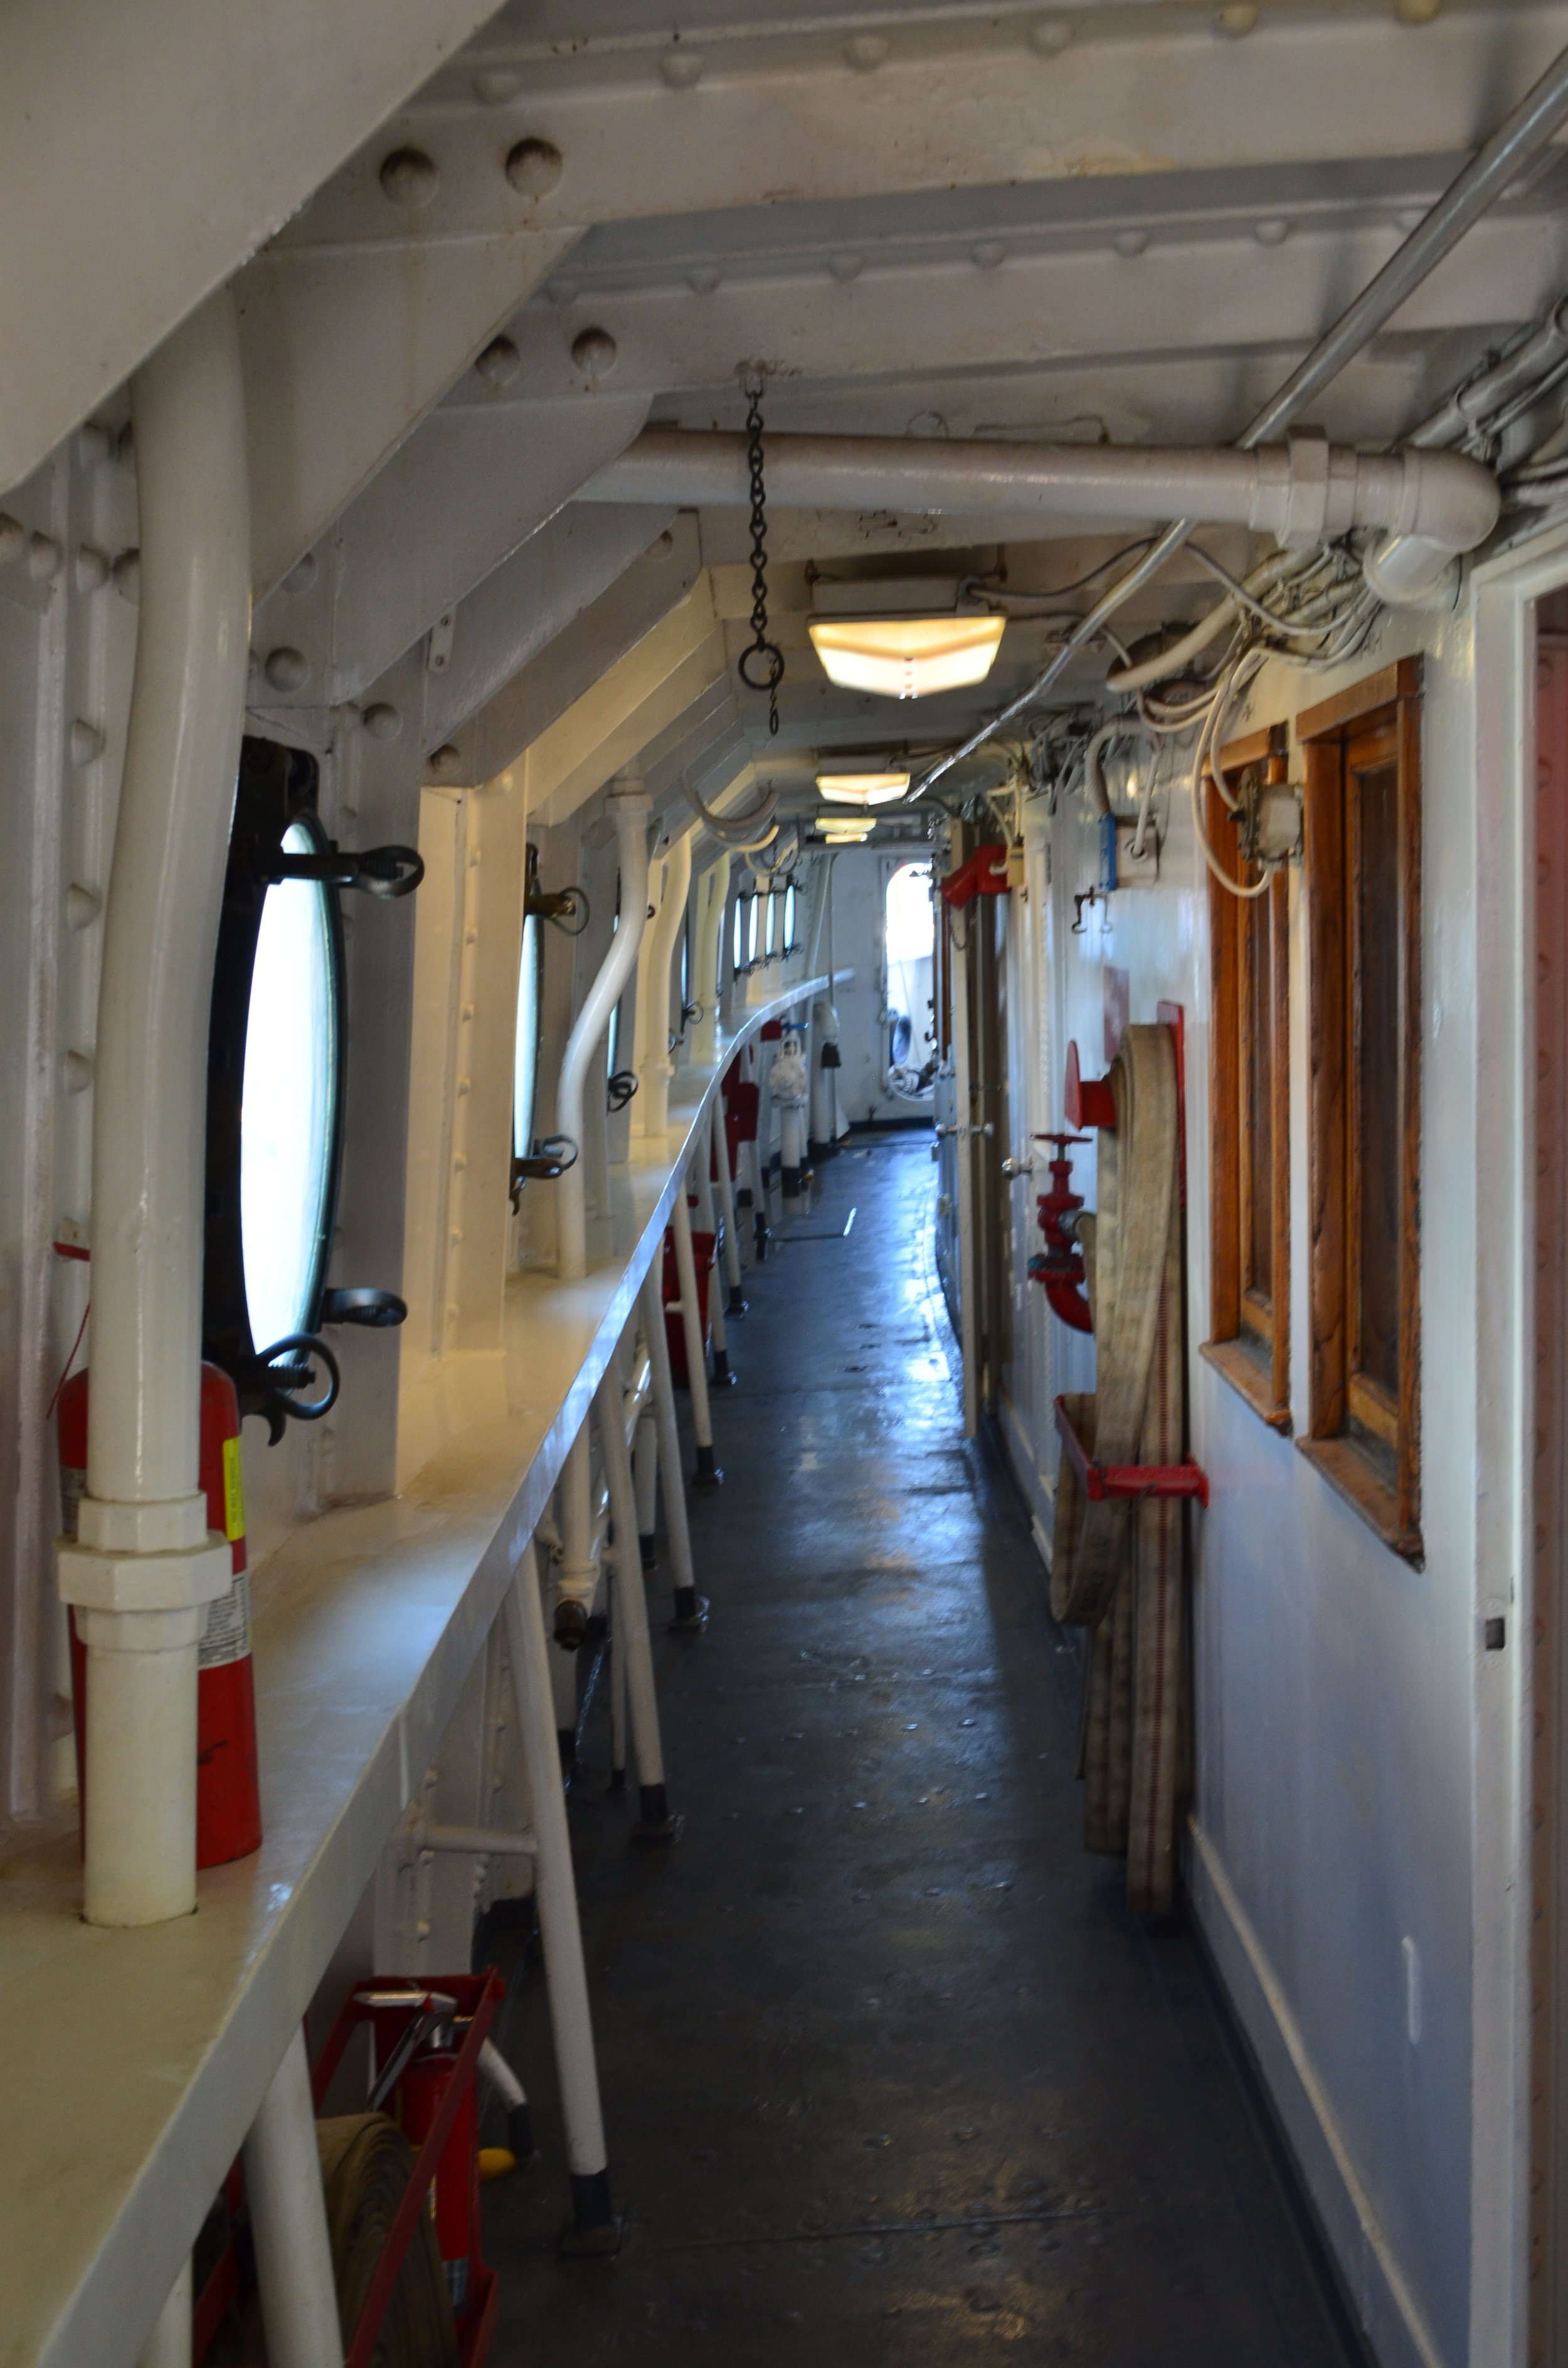 Starboard passage on the 01 deck looking aft. Summer 2017. Tracing wires in the ceiling